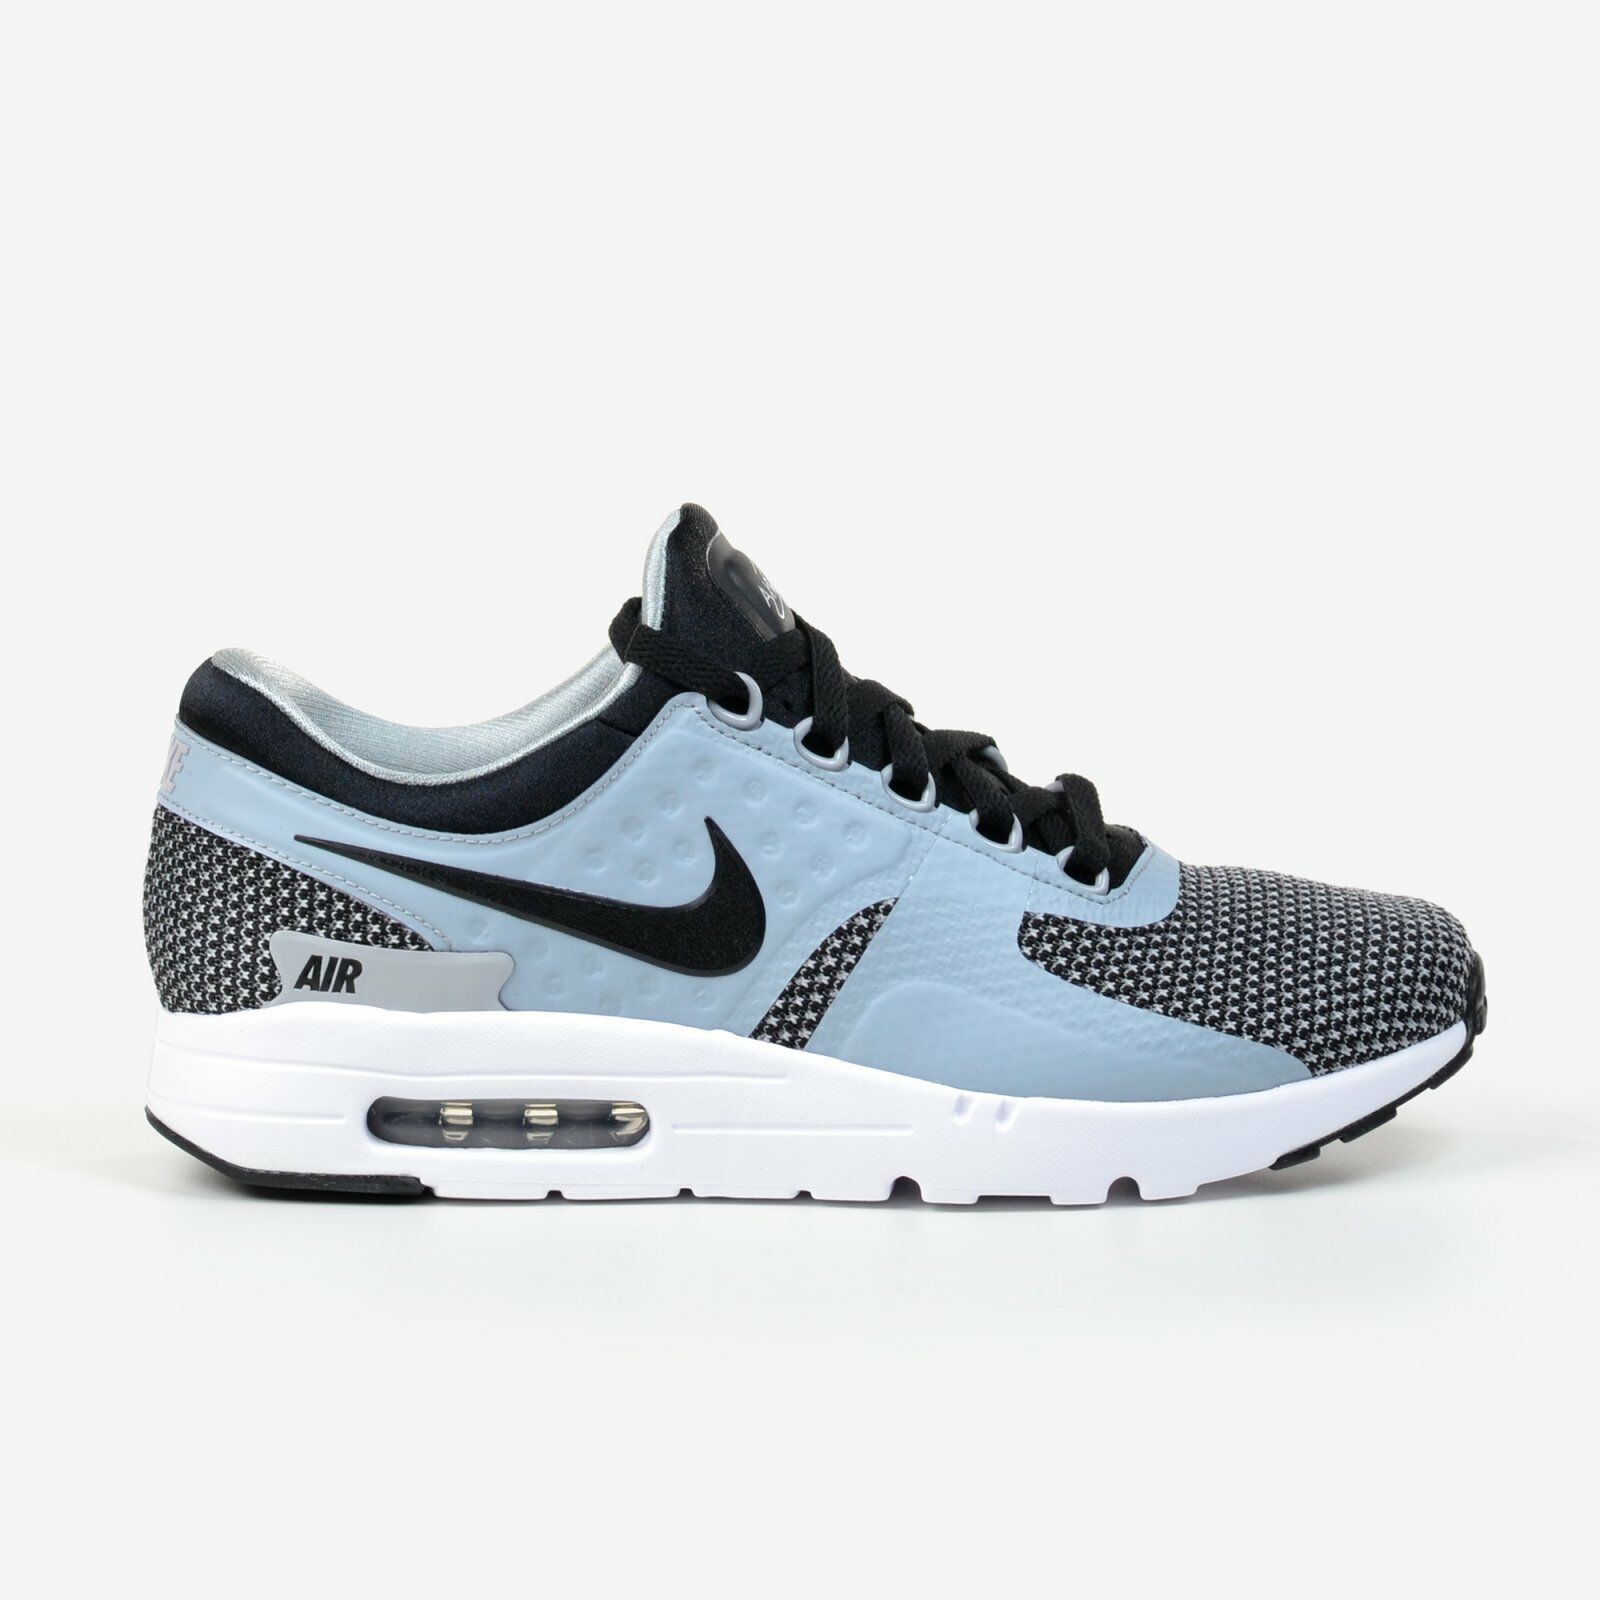 Nike Air Max Zero Essential Black Wolf Grey 2018 Men's Running Shoes 876070-002 New shoes for men and women, limited time discount